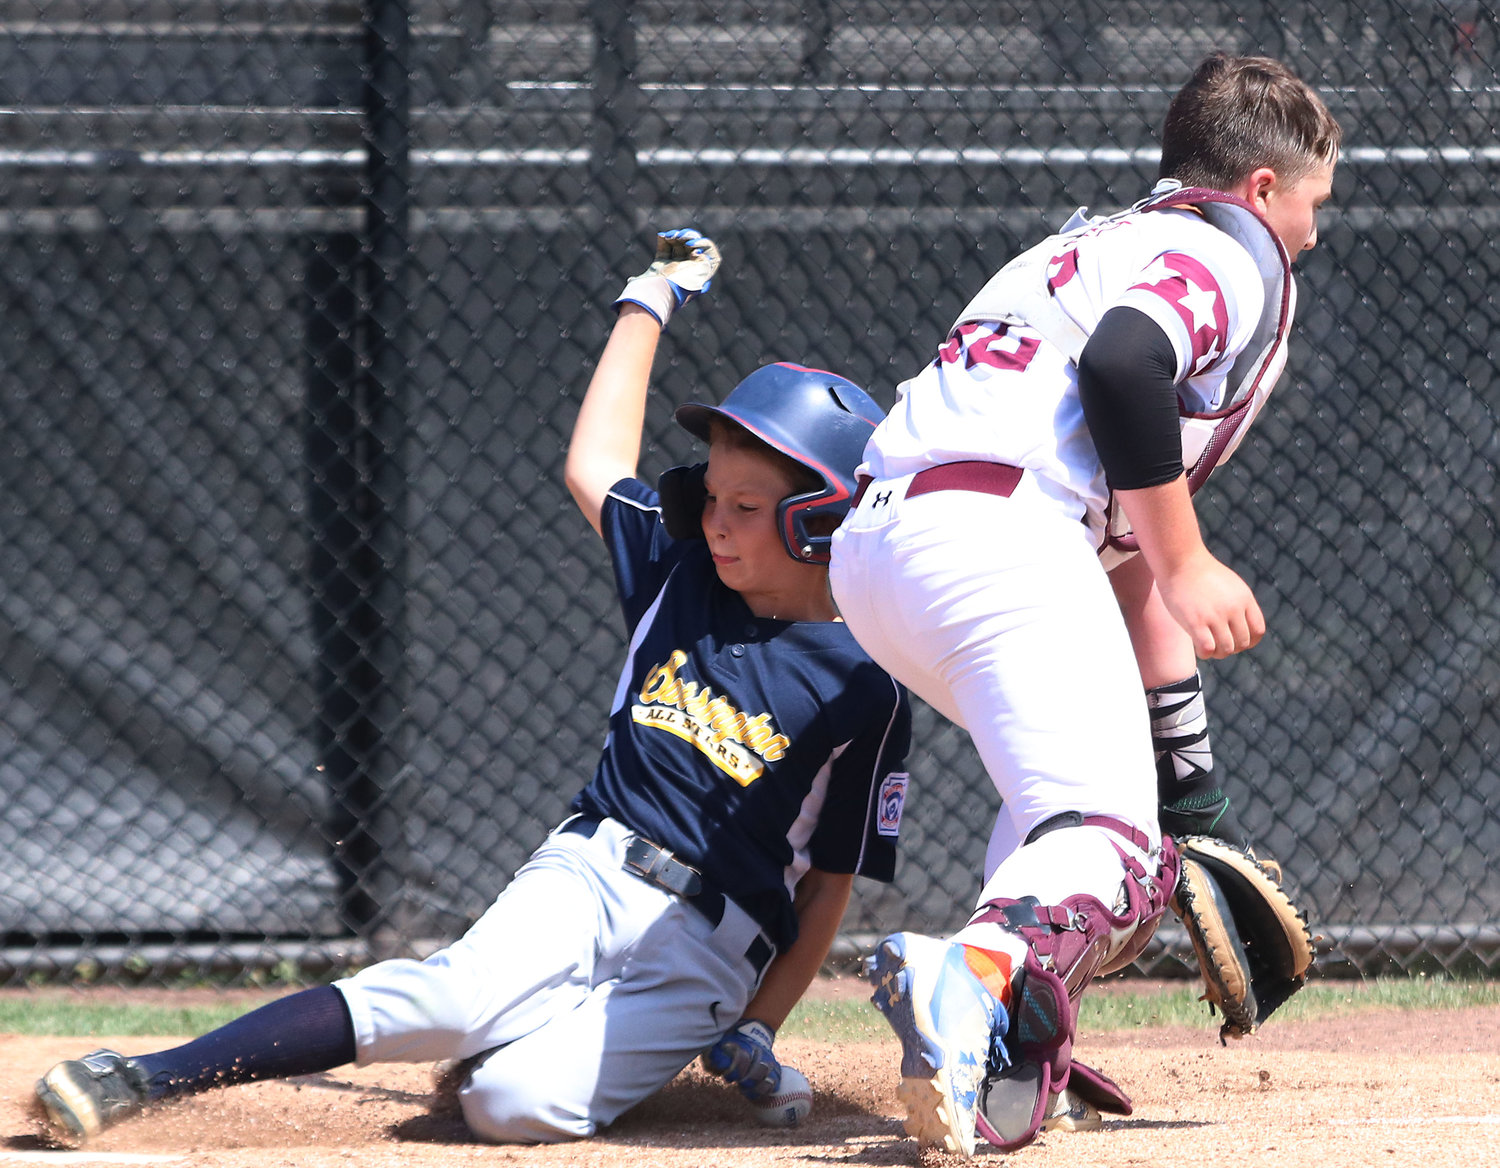 Cullen Crain slides safely in to home plate in the fourth inning.